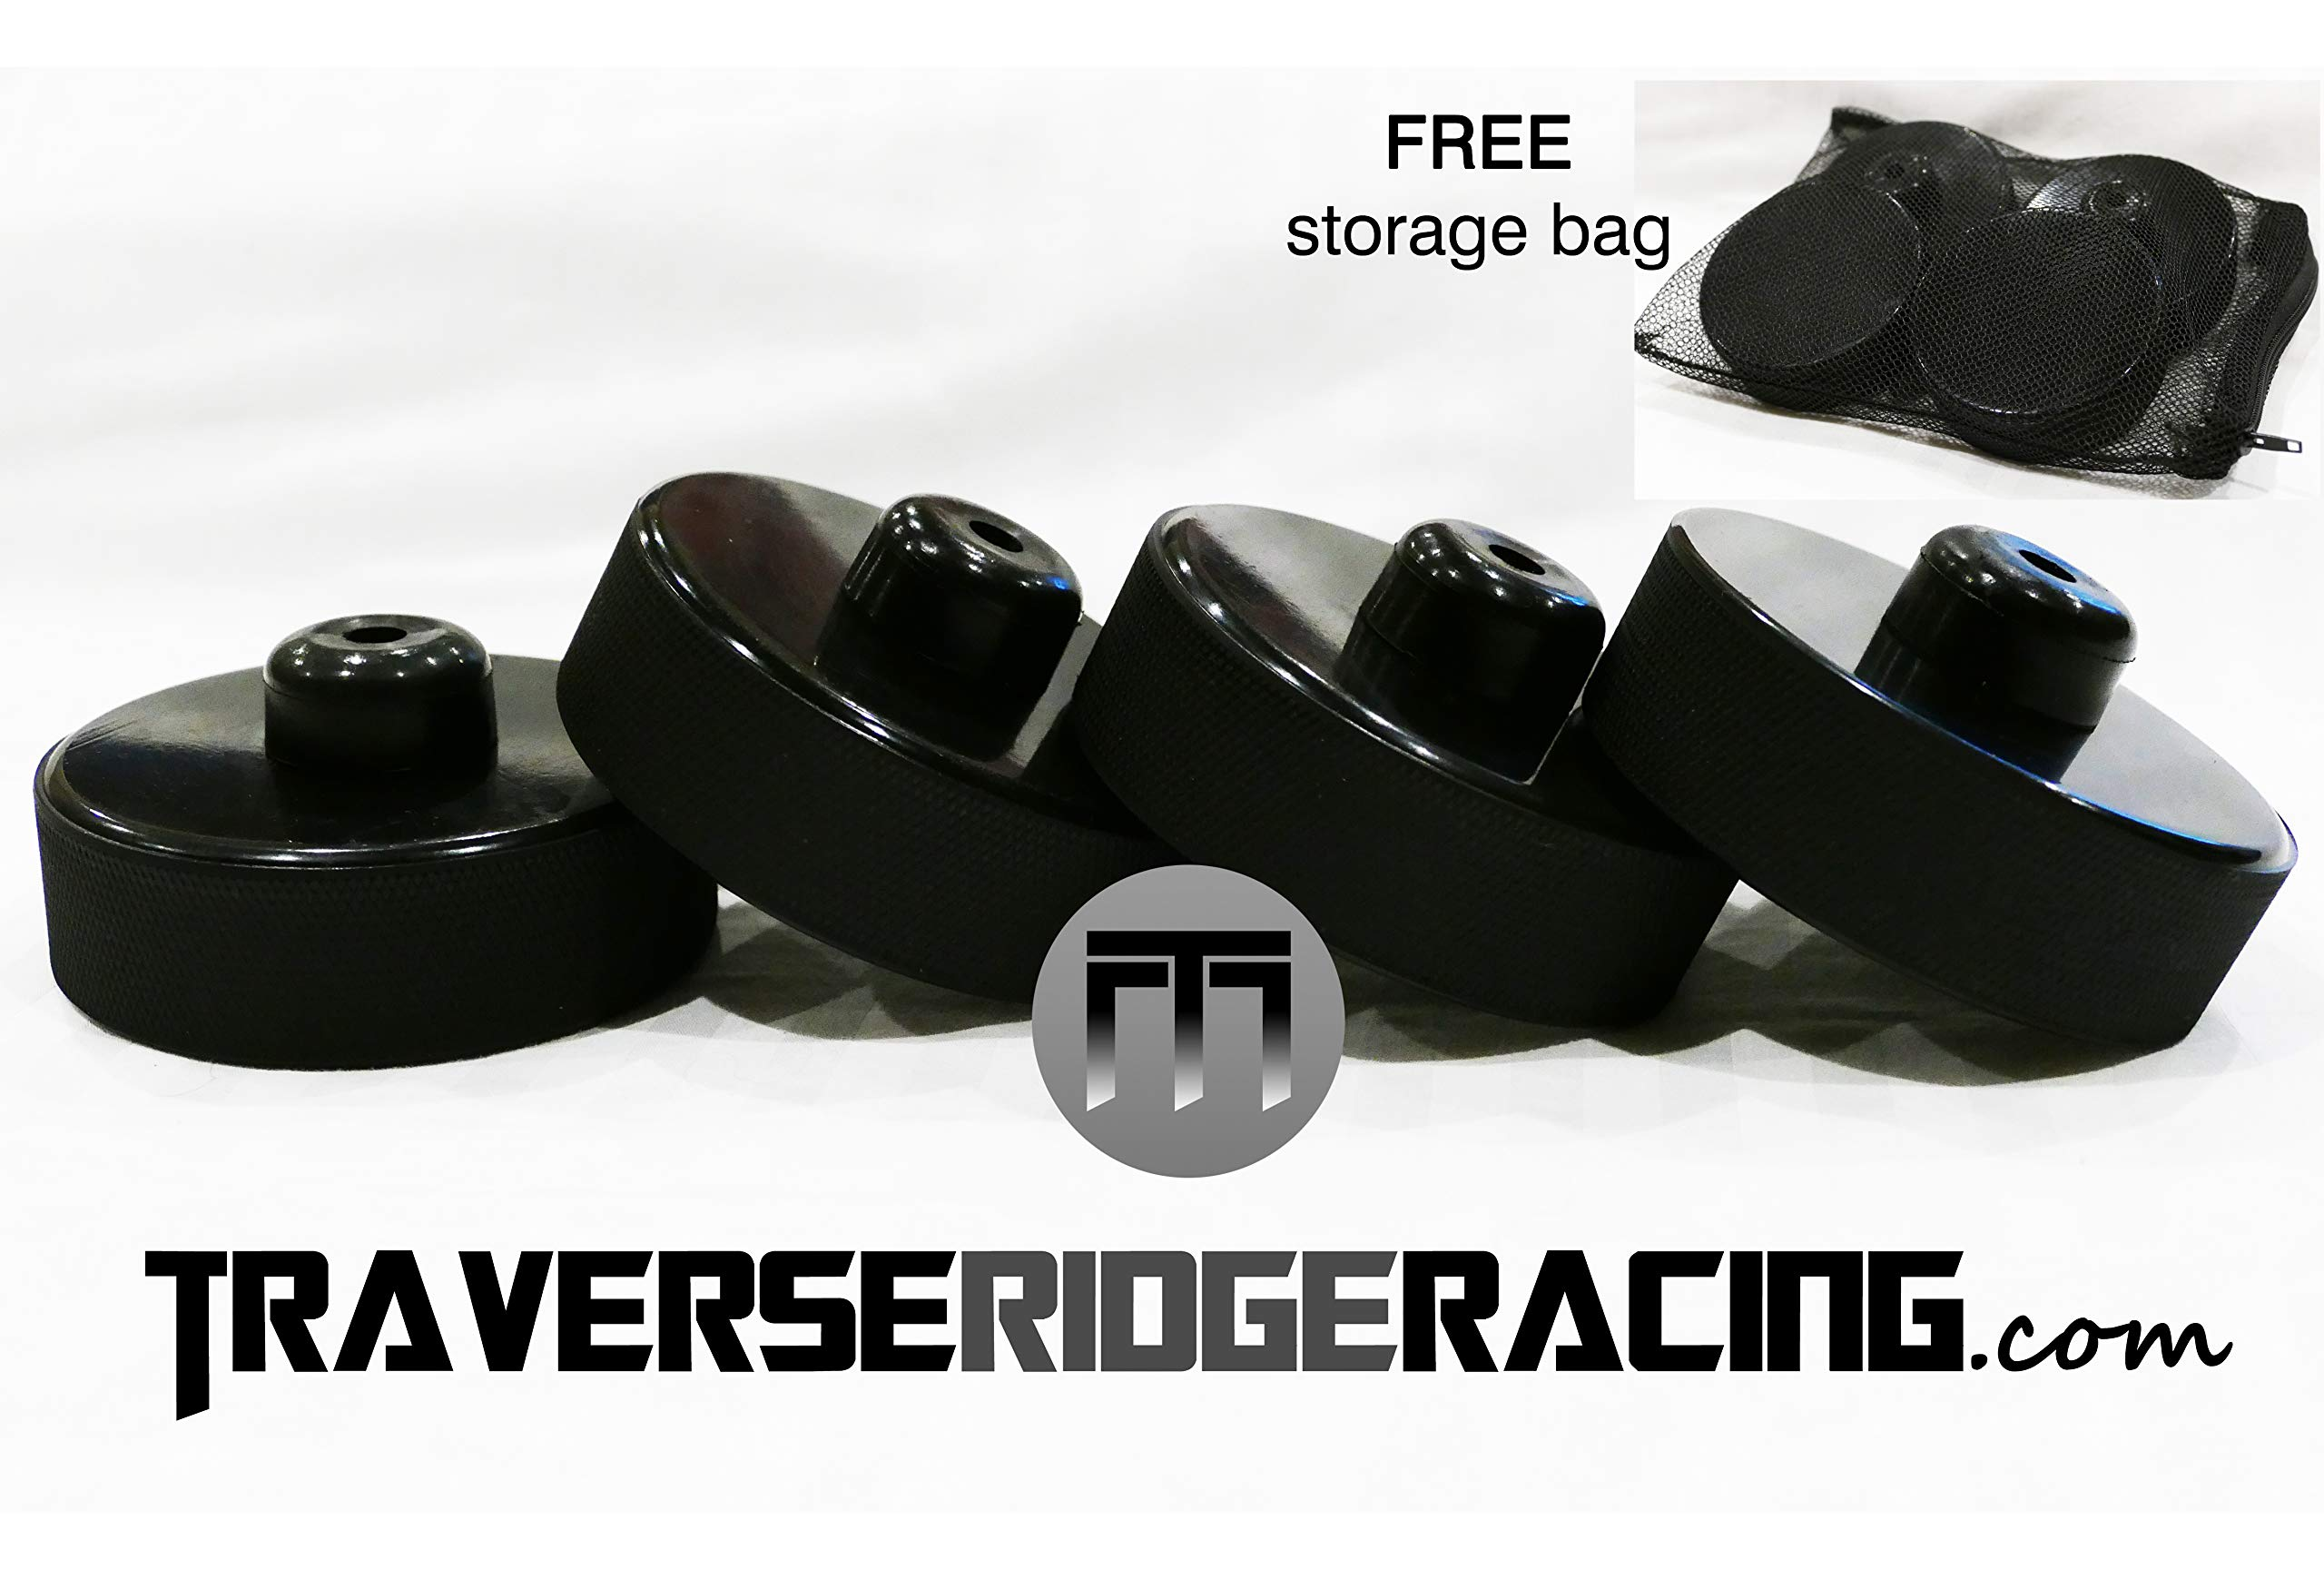 Traverse Ridge Racing The Original Tesla Jack Pad | Lift Point Adapter for Model S 3 X with Bag (4-Pack) | Fast Priority Mail Shipping | Improved Design - Metal Reinforced Upper, Low Profile by Traverse Ridge Racing